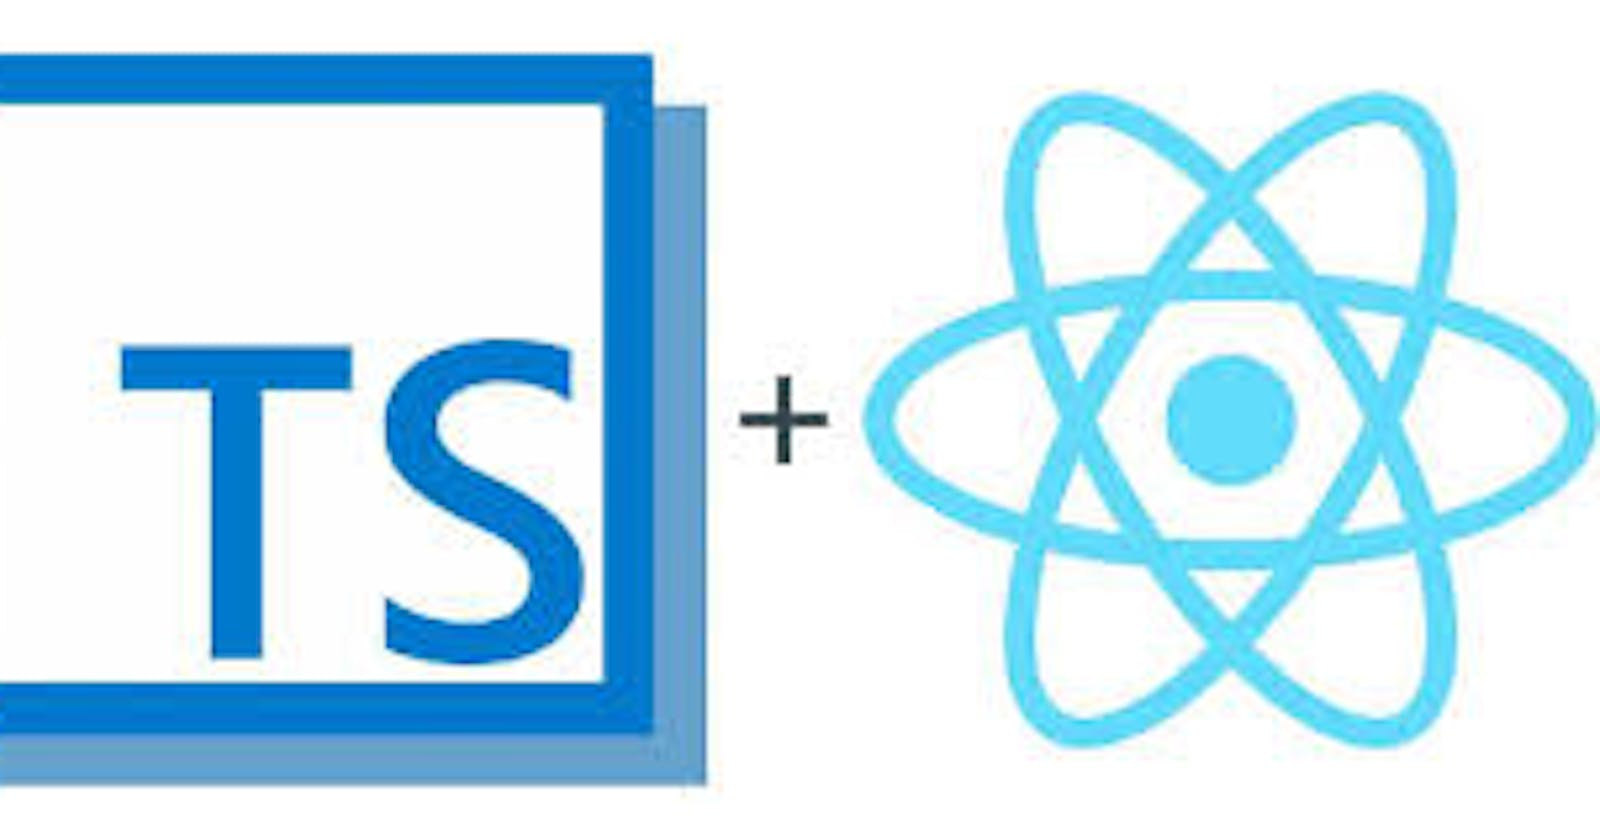 Switching To Typescript in your React Apps